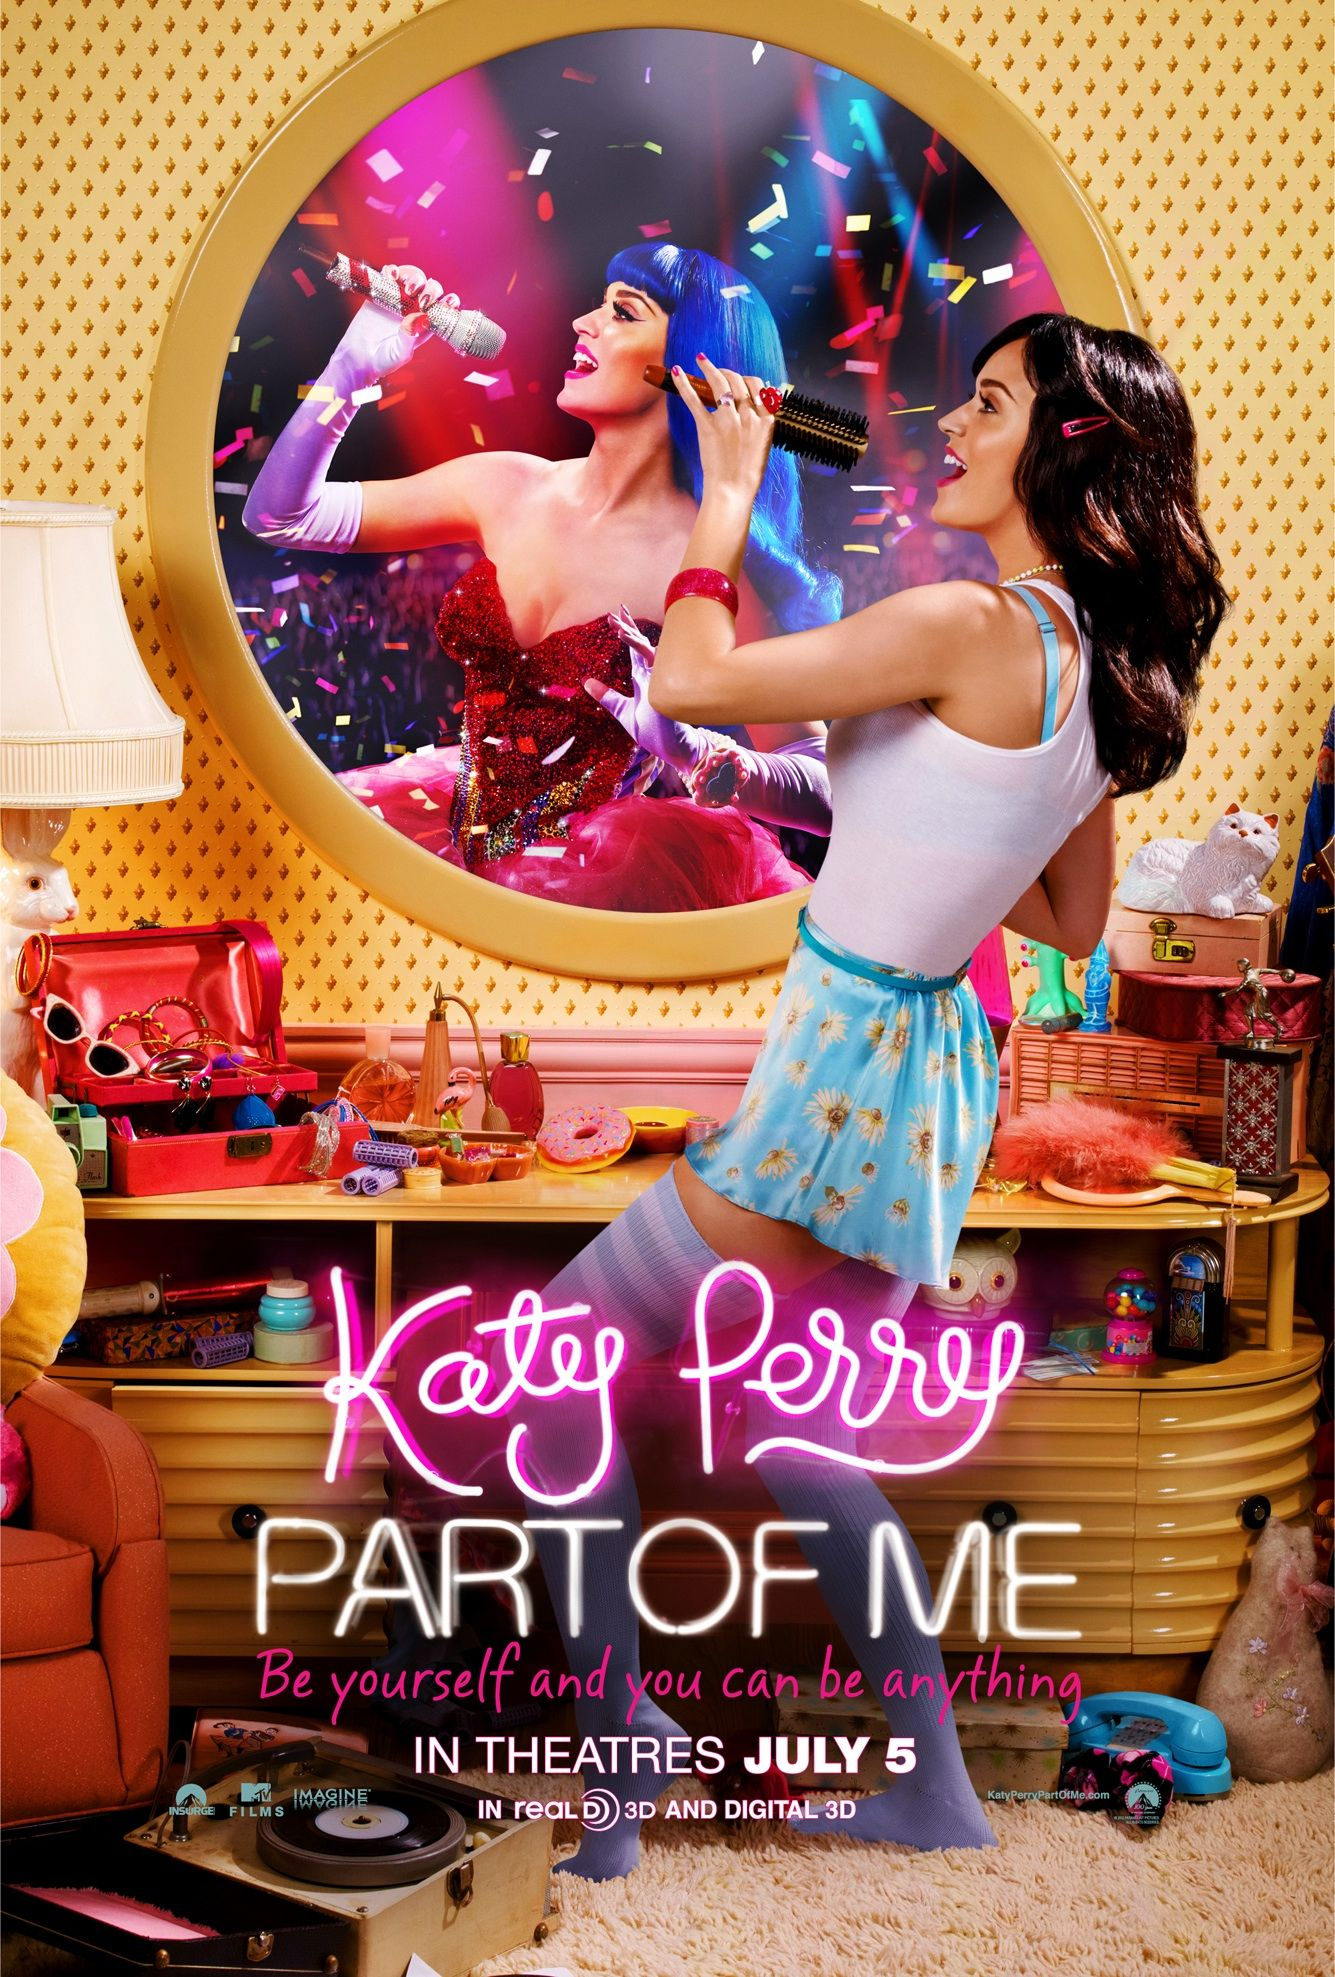 So happy to share with you the official #KP3D movie poster...from a hairbrush to a headliner...get ready, JULY 5TH! -@KatyPerry